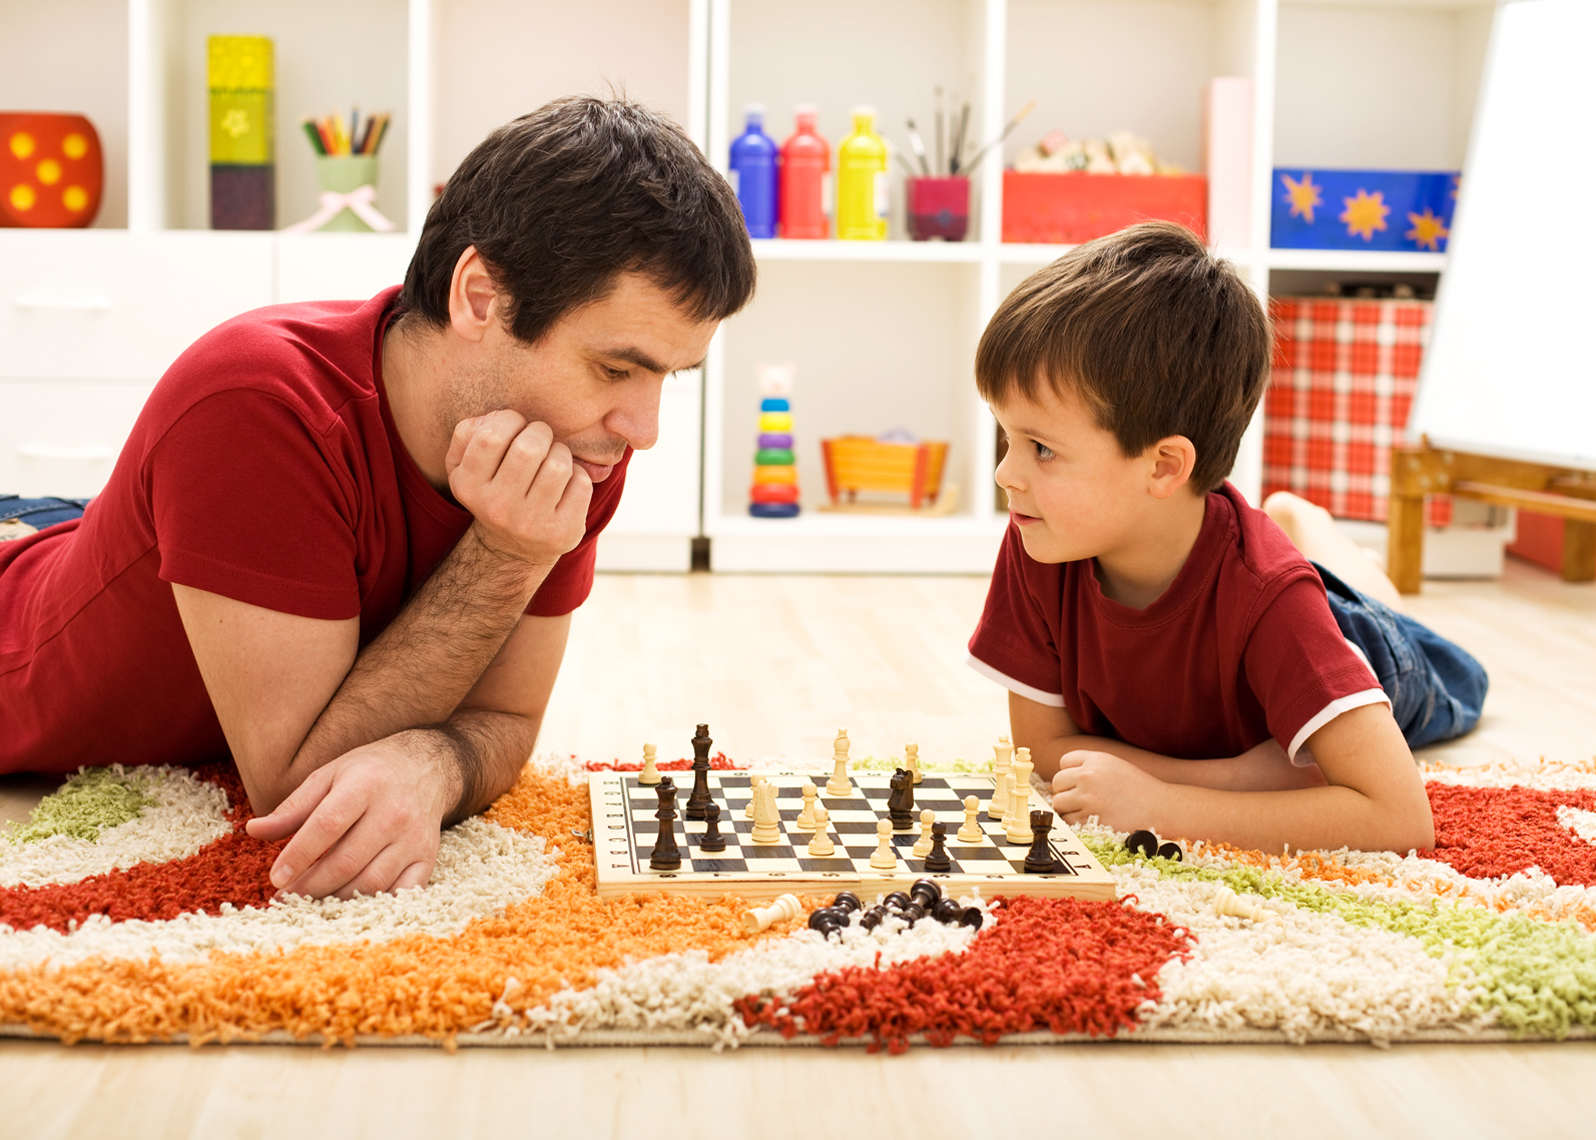 Man teaching boy the rules of chess - playing on the floor in the kids room